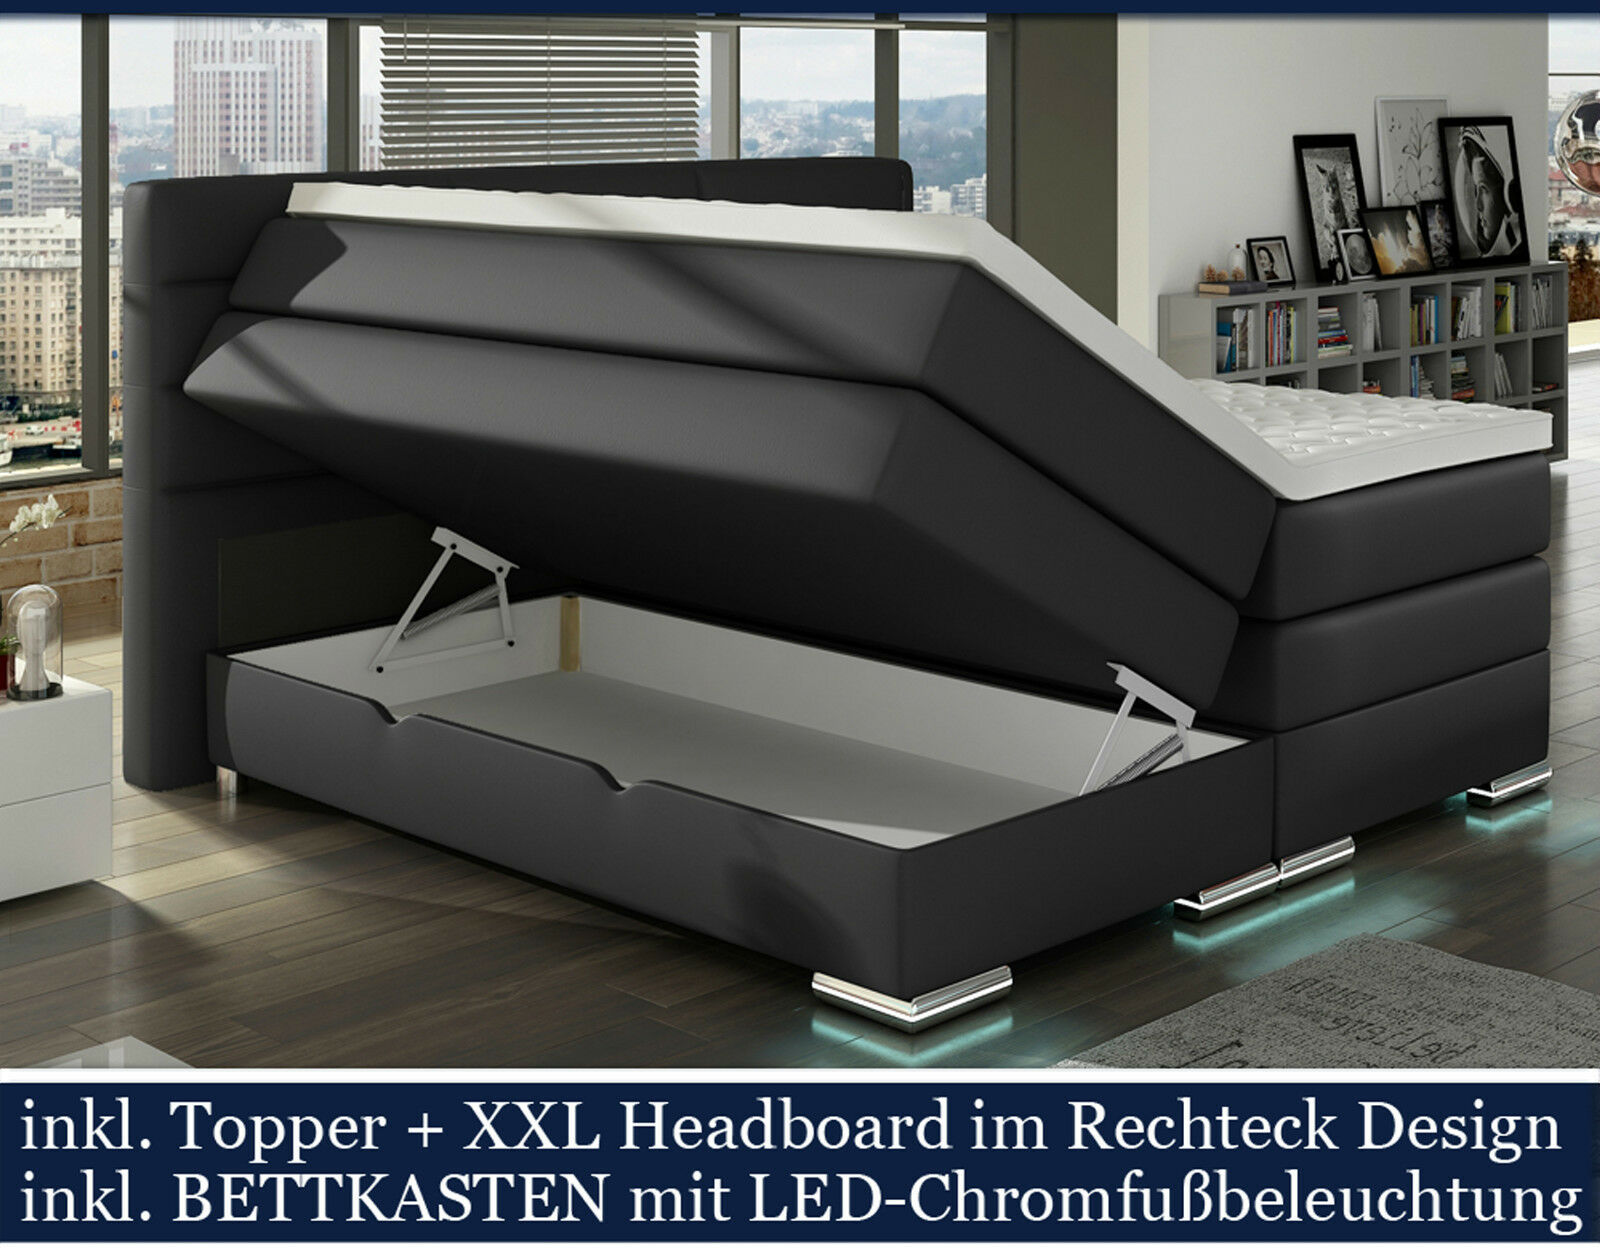 xxl boxspringbett mit bettkasten boxspring bett schwarz led 180x200 eur picclick de. Black Bedroom Furniture Sets. Home Design Ideas